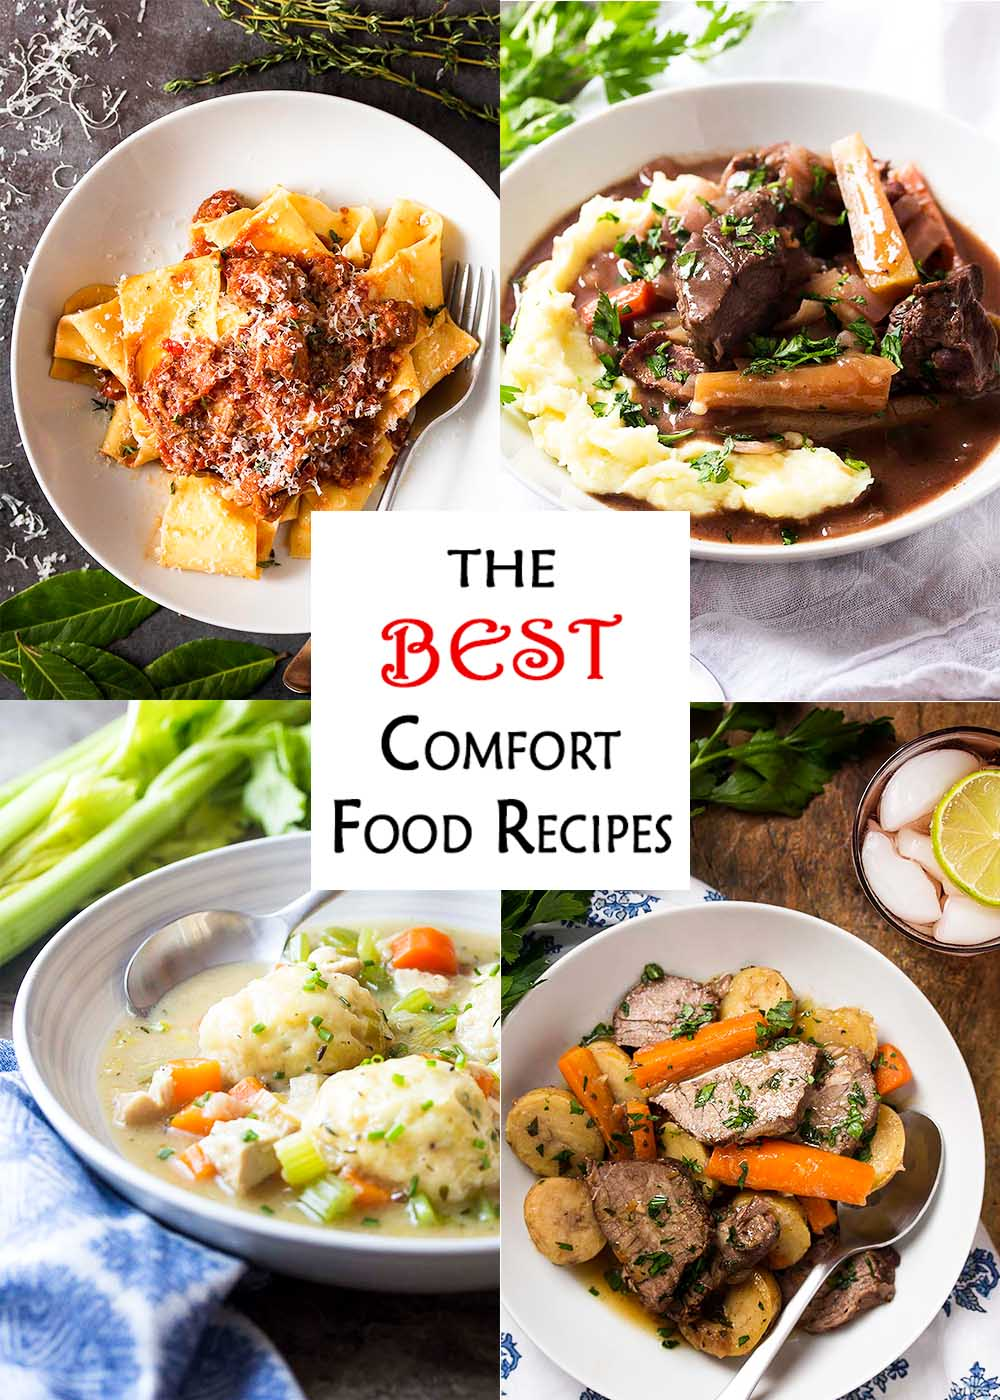 Collage of dinner recipes with text overlay - The Best Comfort Food Recipes.